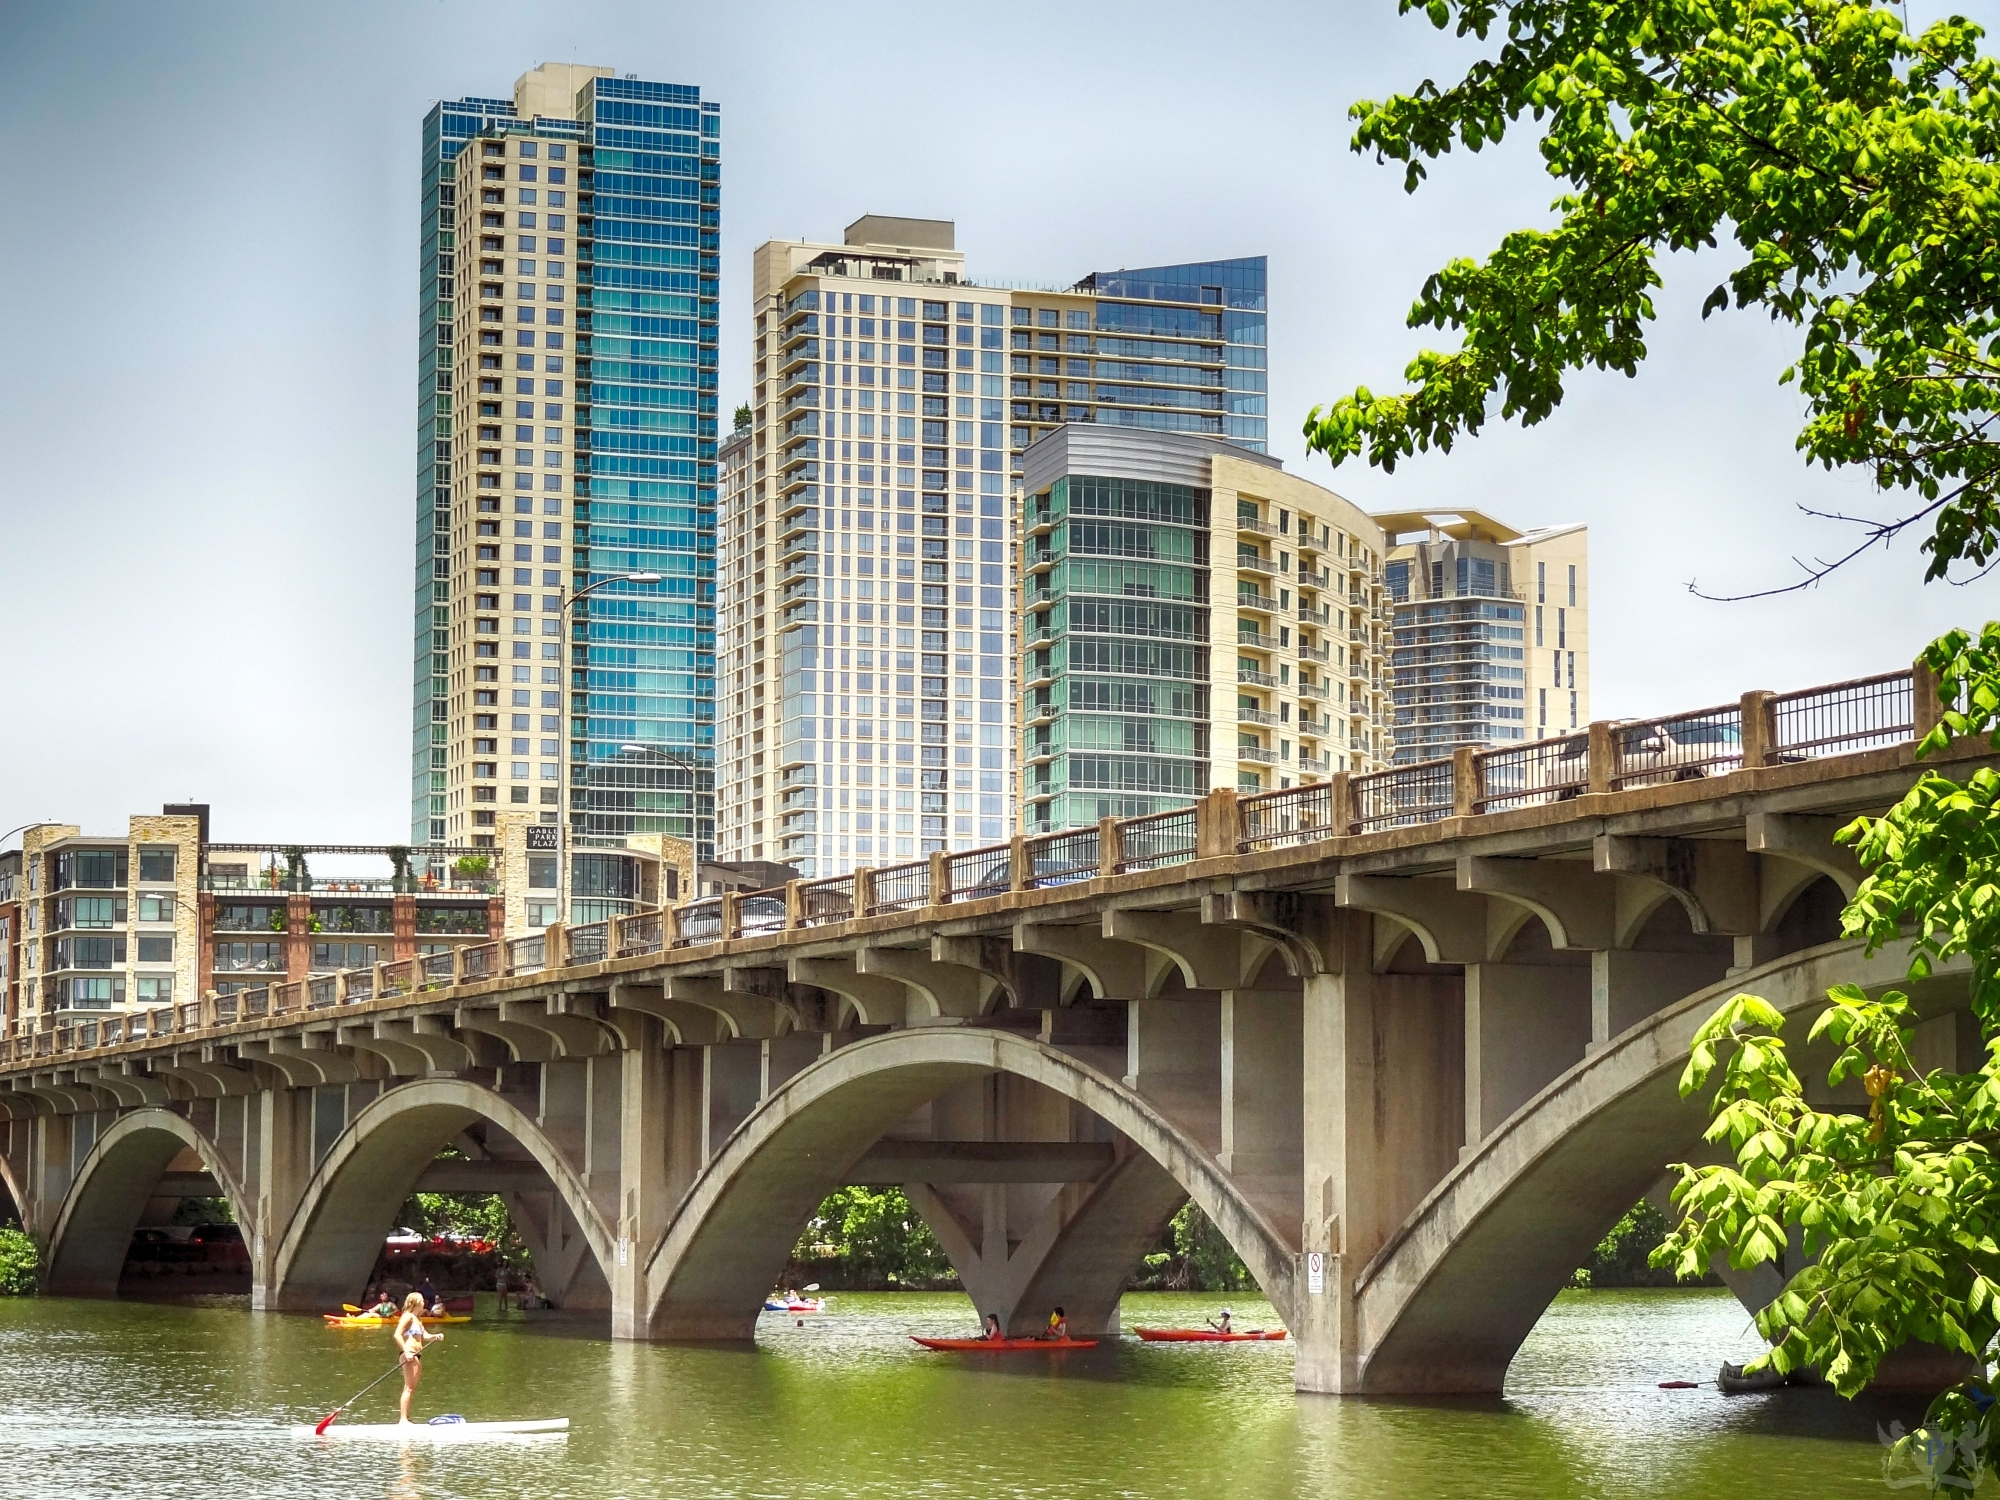 Lamar Street Bridge with Stand Up Paddleboarder